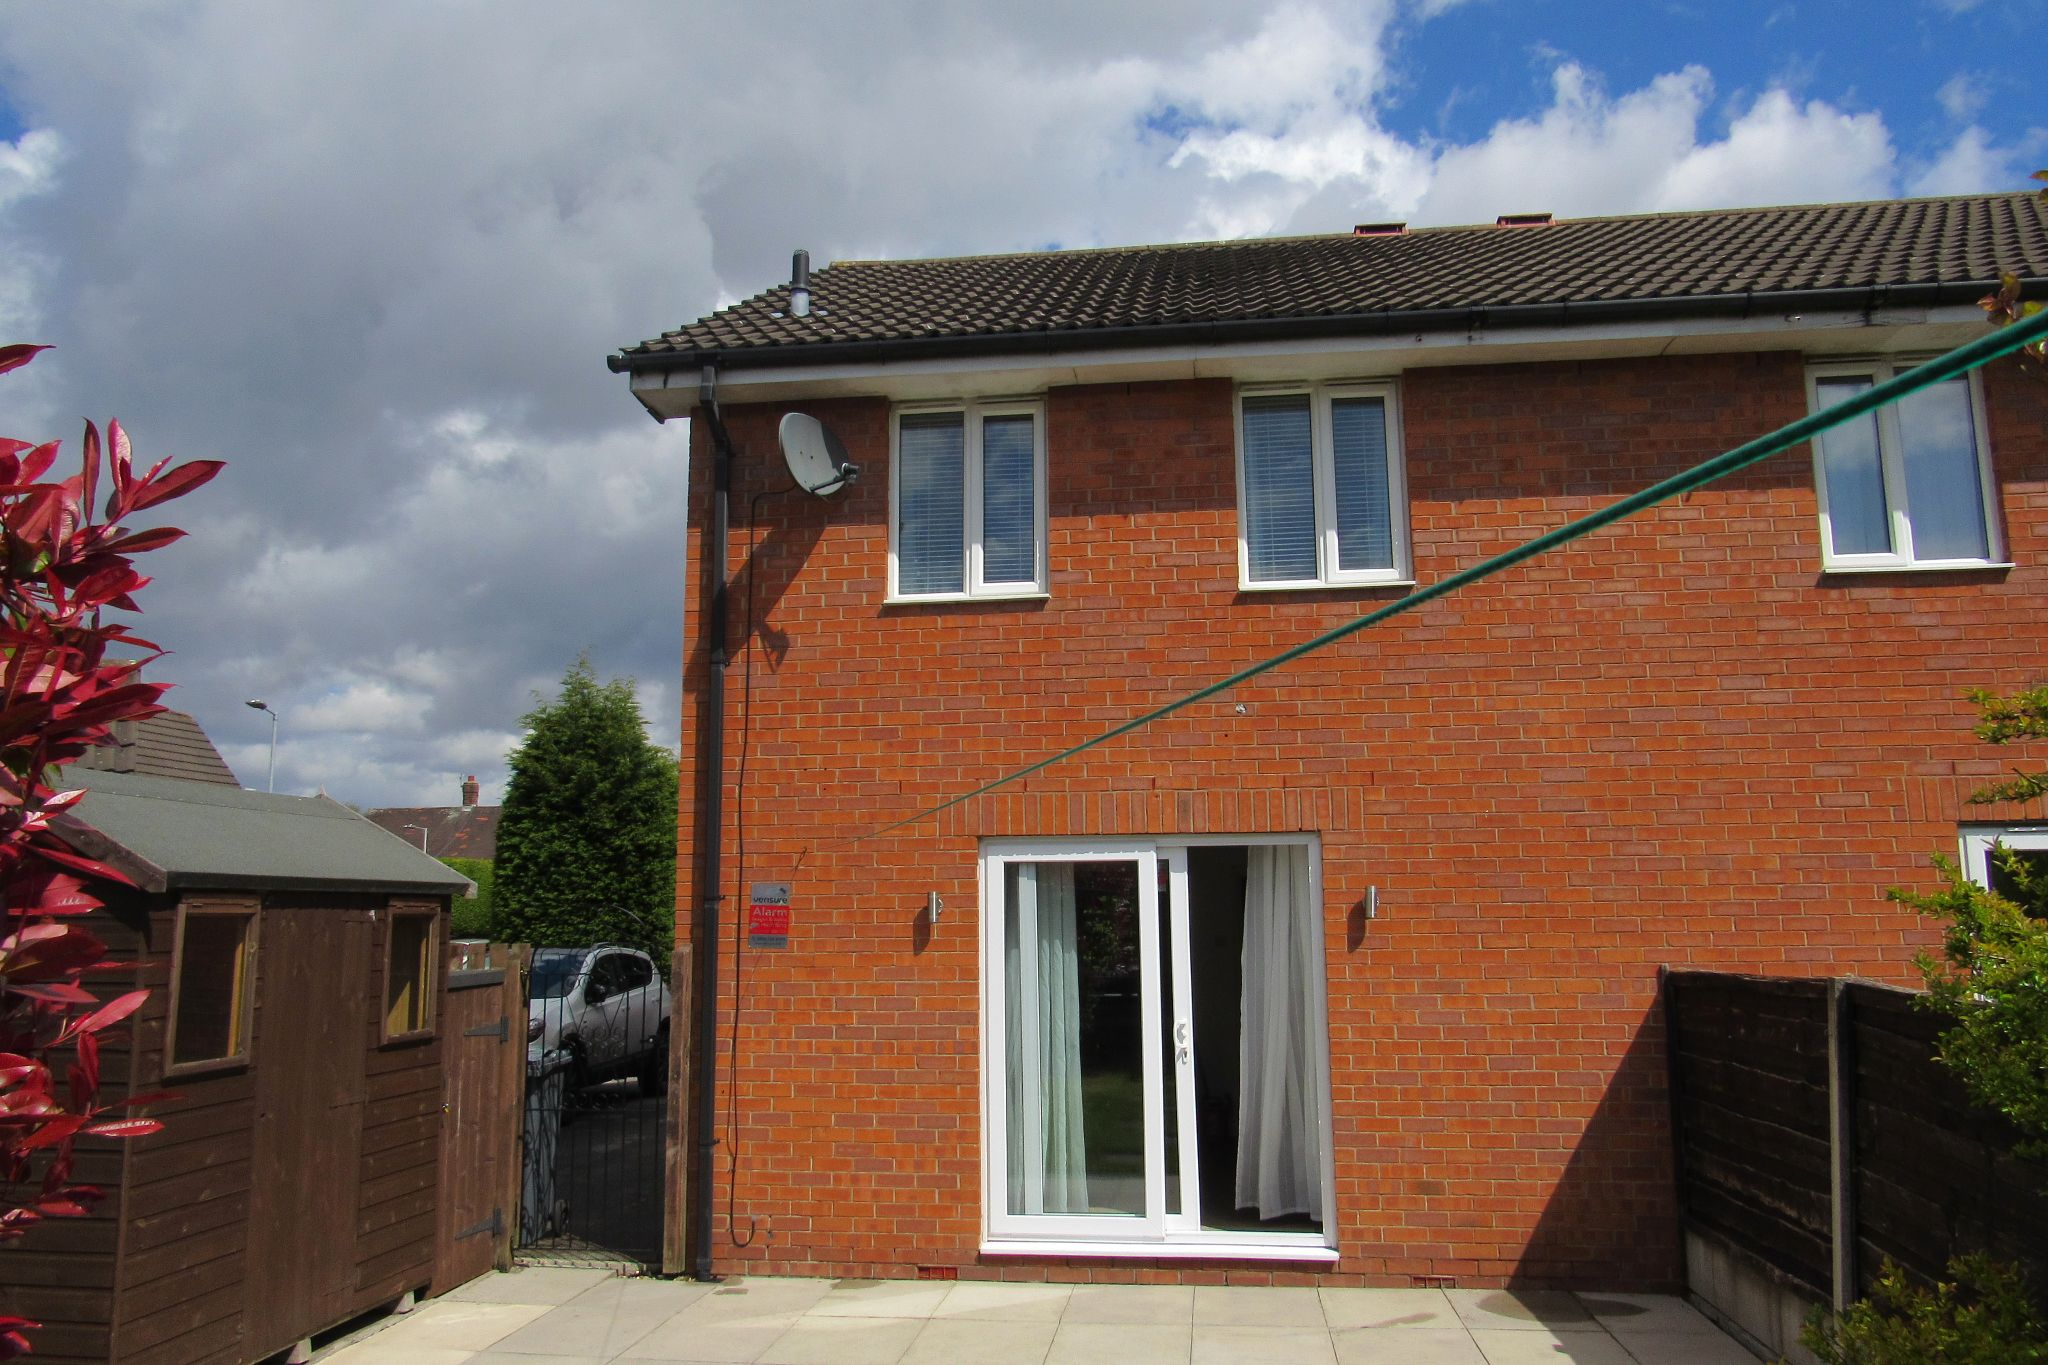 3 bedroom semi-detached house Sale Agreed in Manchester - Photograph 4.